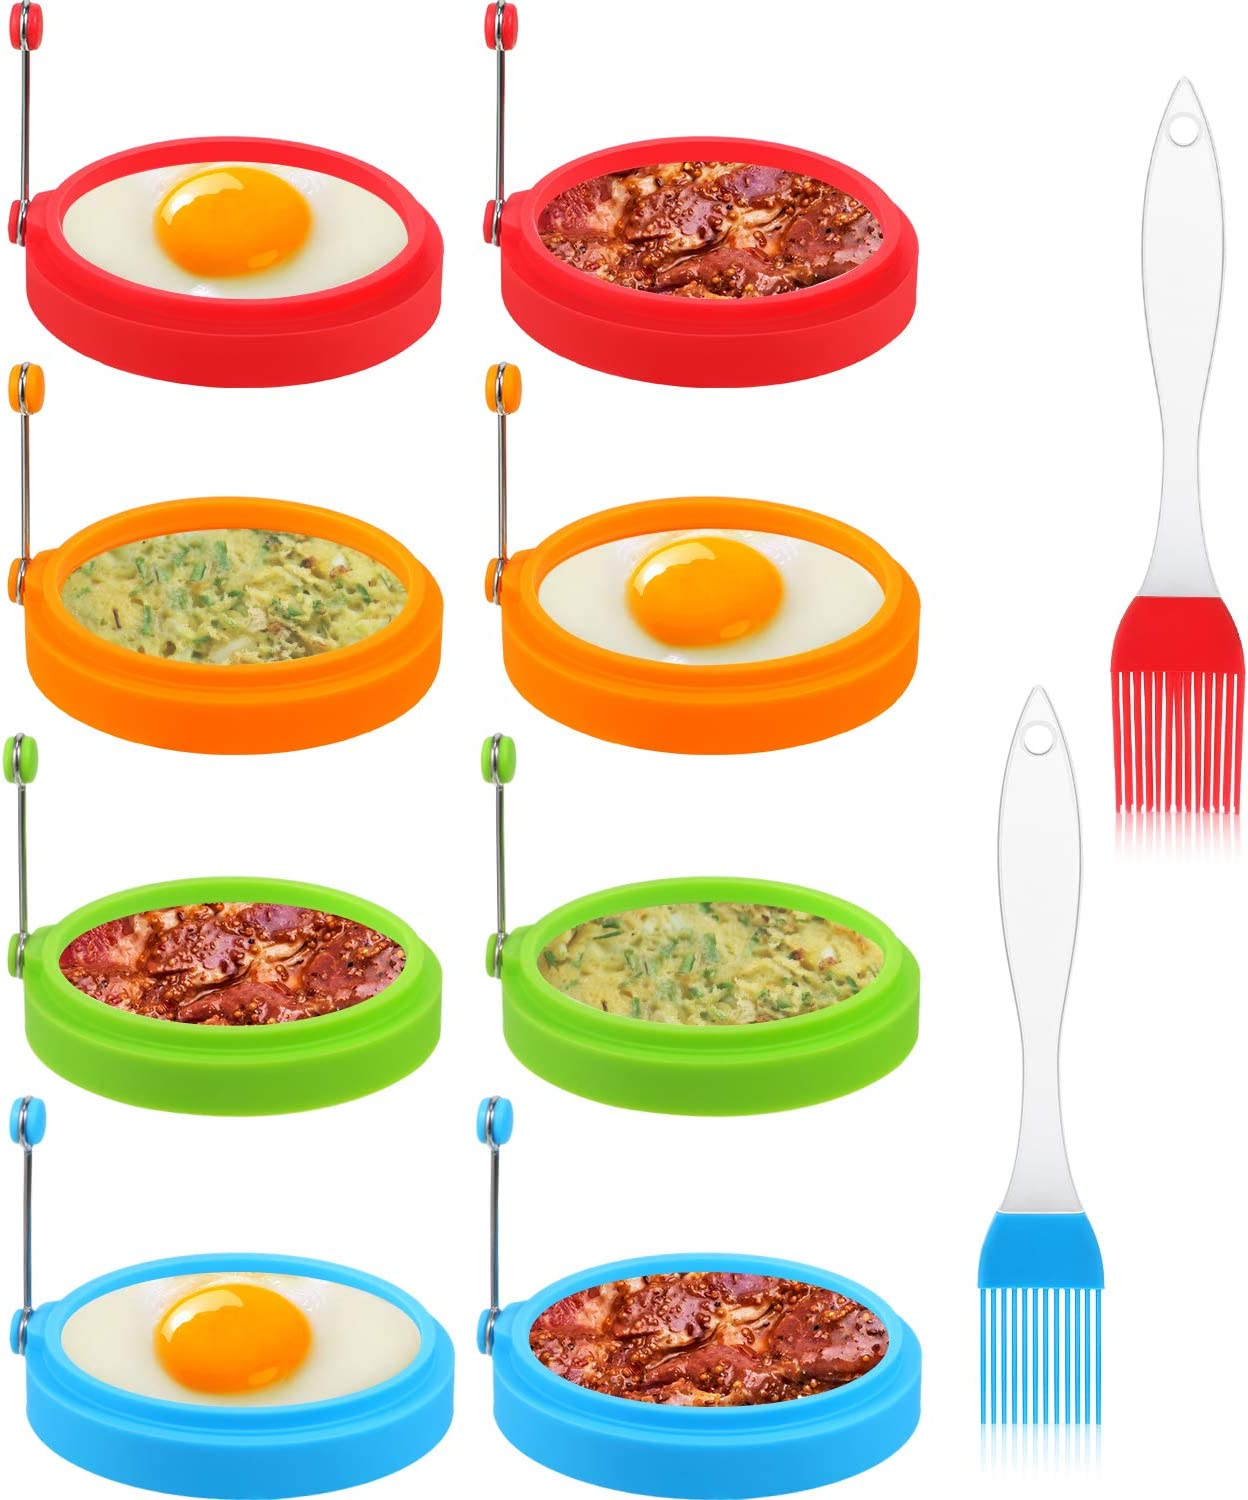 8 Packs Silicone Egg Rings, 4 Inch Food Grade Egg Cooking Rings, Non Stick Fried Egg Ring Mold, Pancake Breakfast Sandwiches, with 2 Silicone Brushes (Red, Orange, Blue and Green)